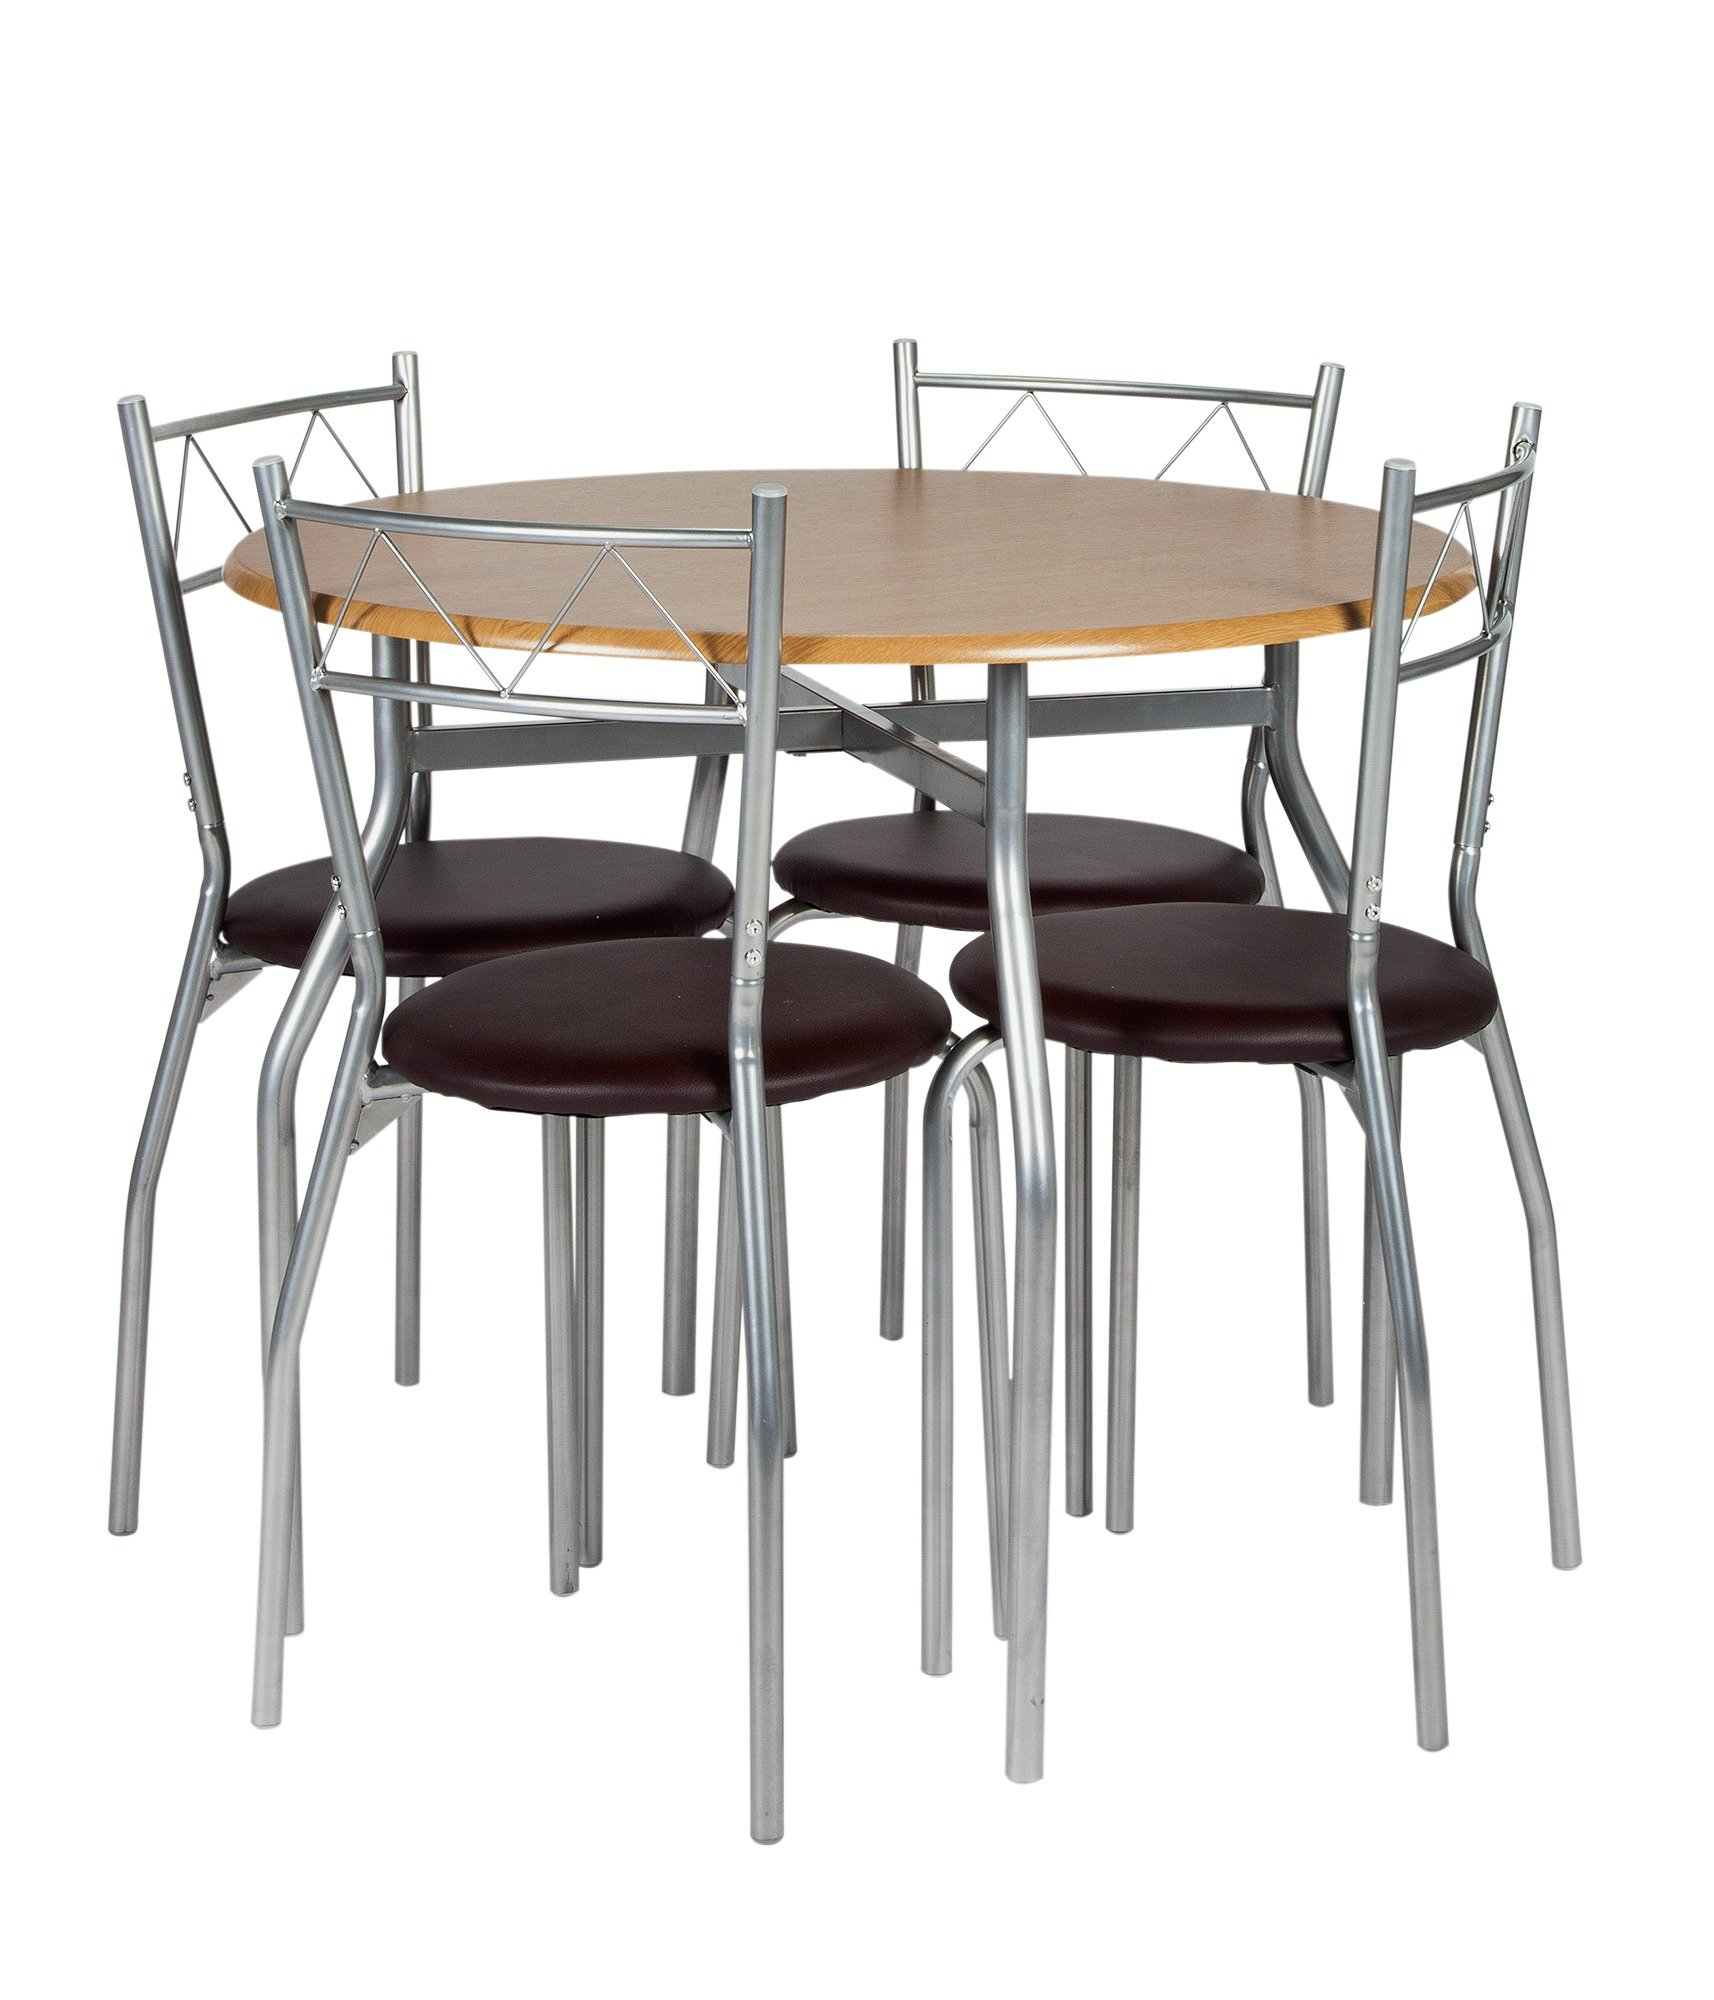 Buy Oslo Round Wood Effect Dining Table 4 Chairs at Argoscouk